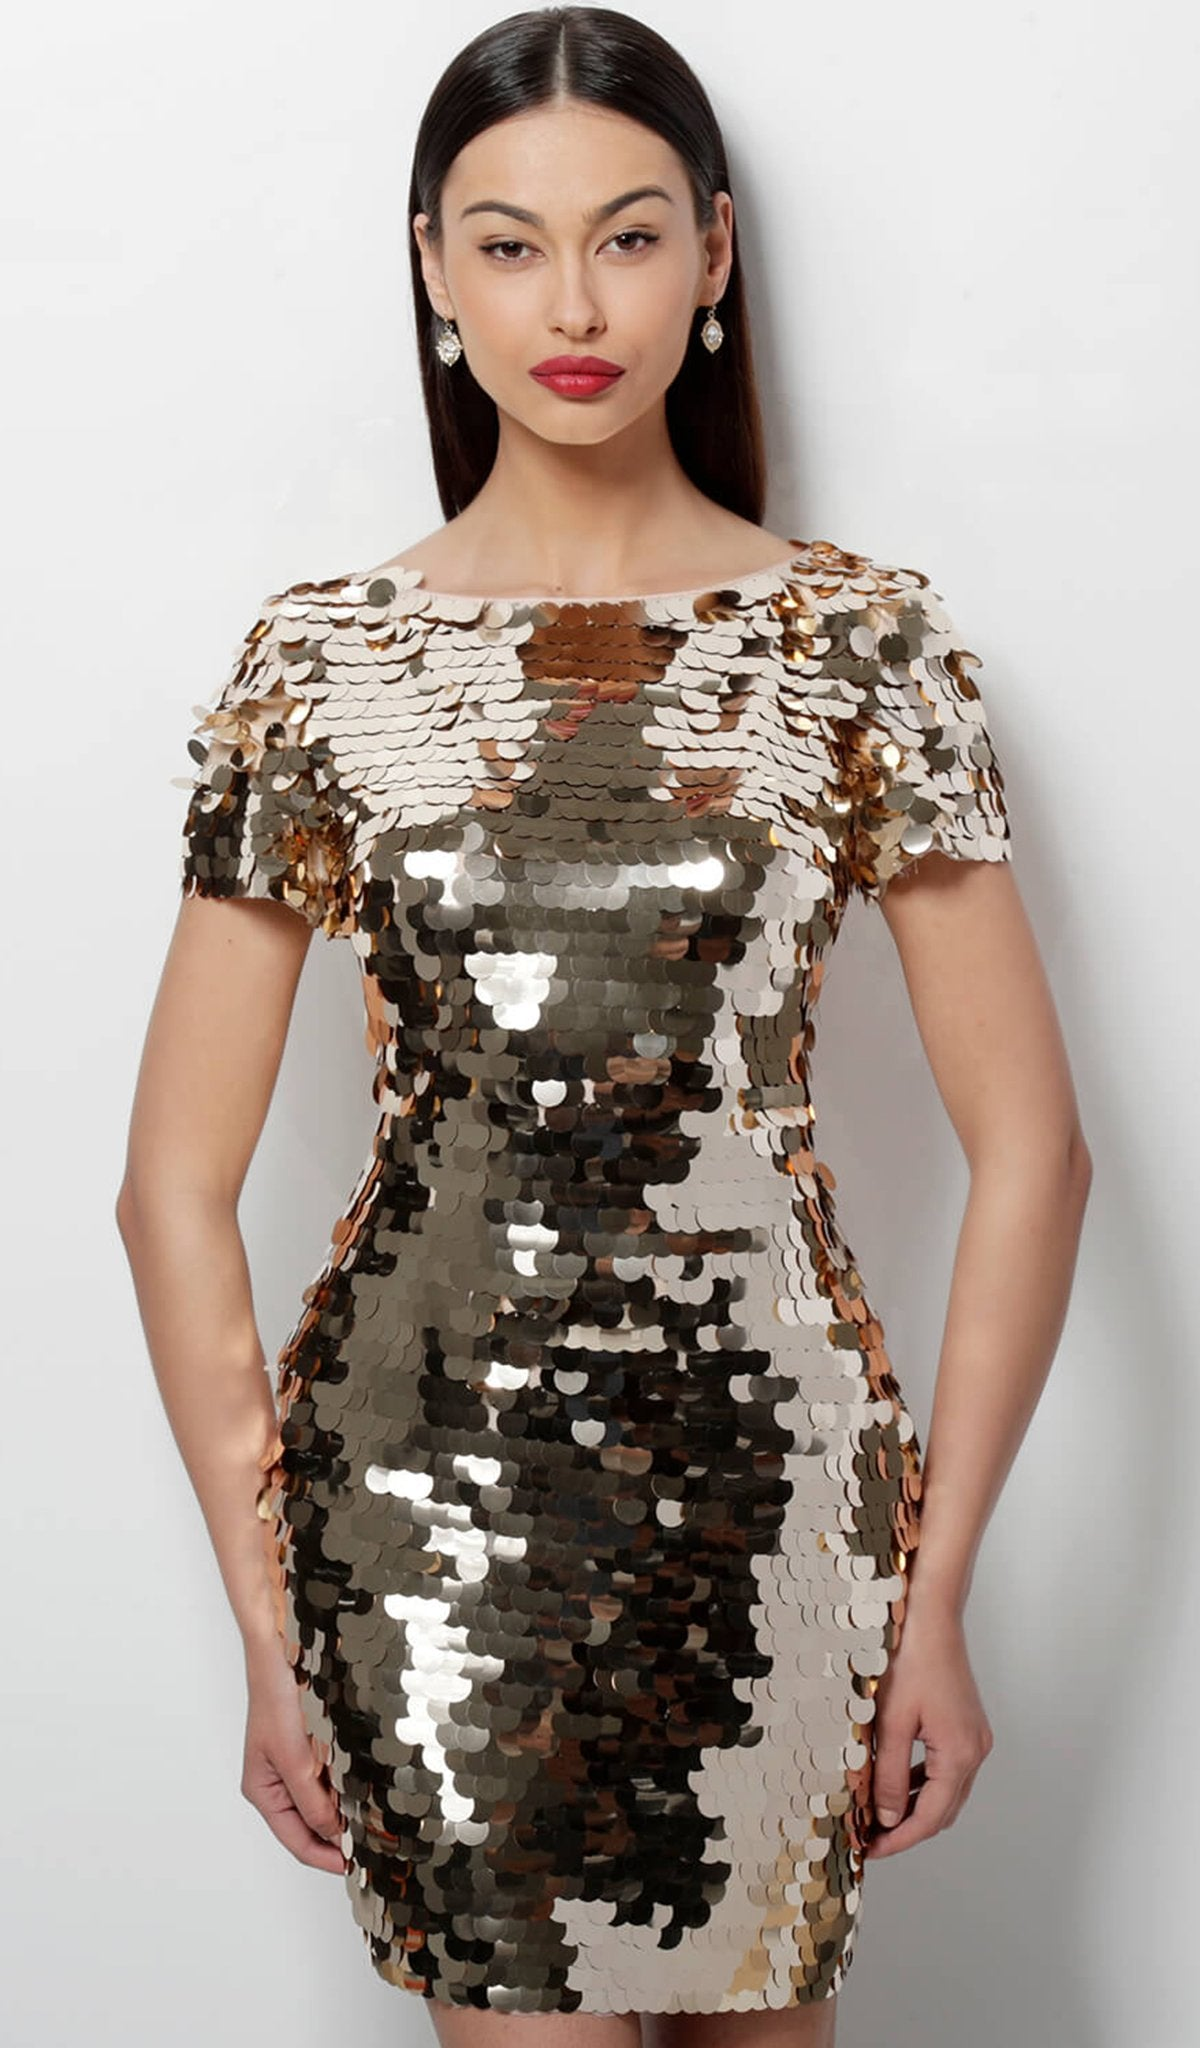 Jovani - 65575 Short Sleeve Bateau Paillette Sheath Dress in Gold